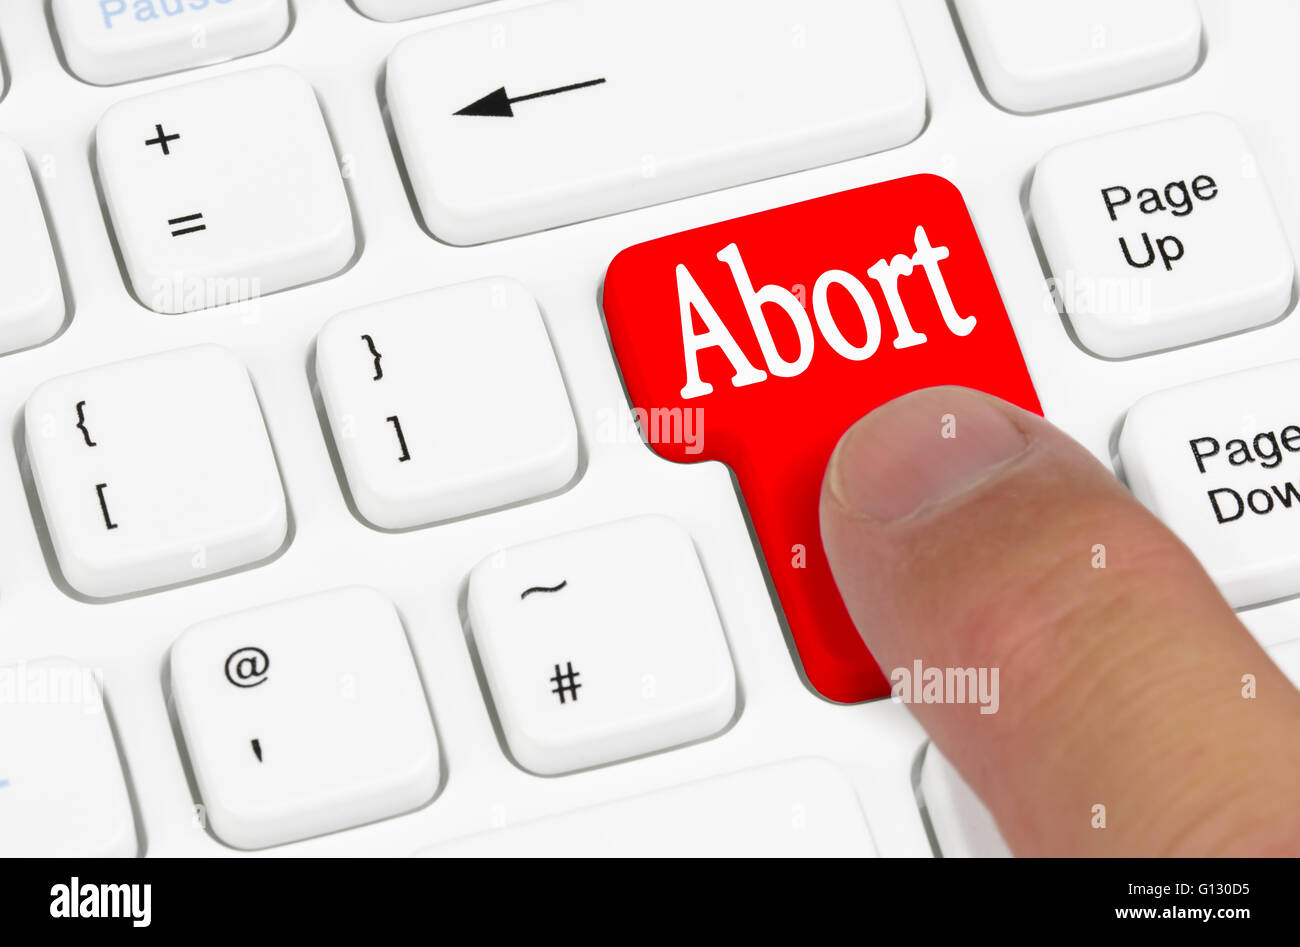 Abort key being pressed on a computer keyboard. - Stock Image